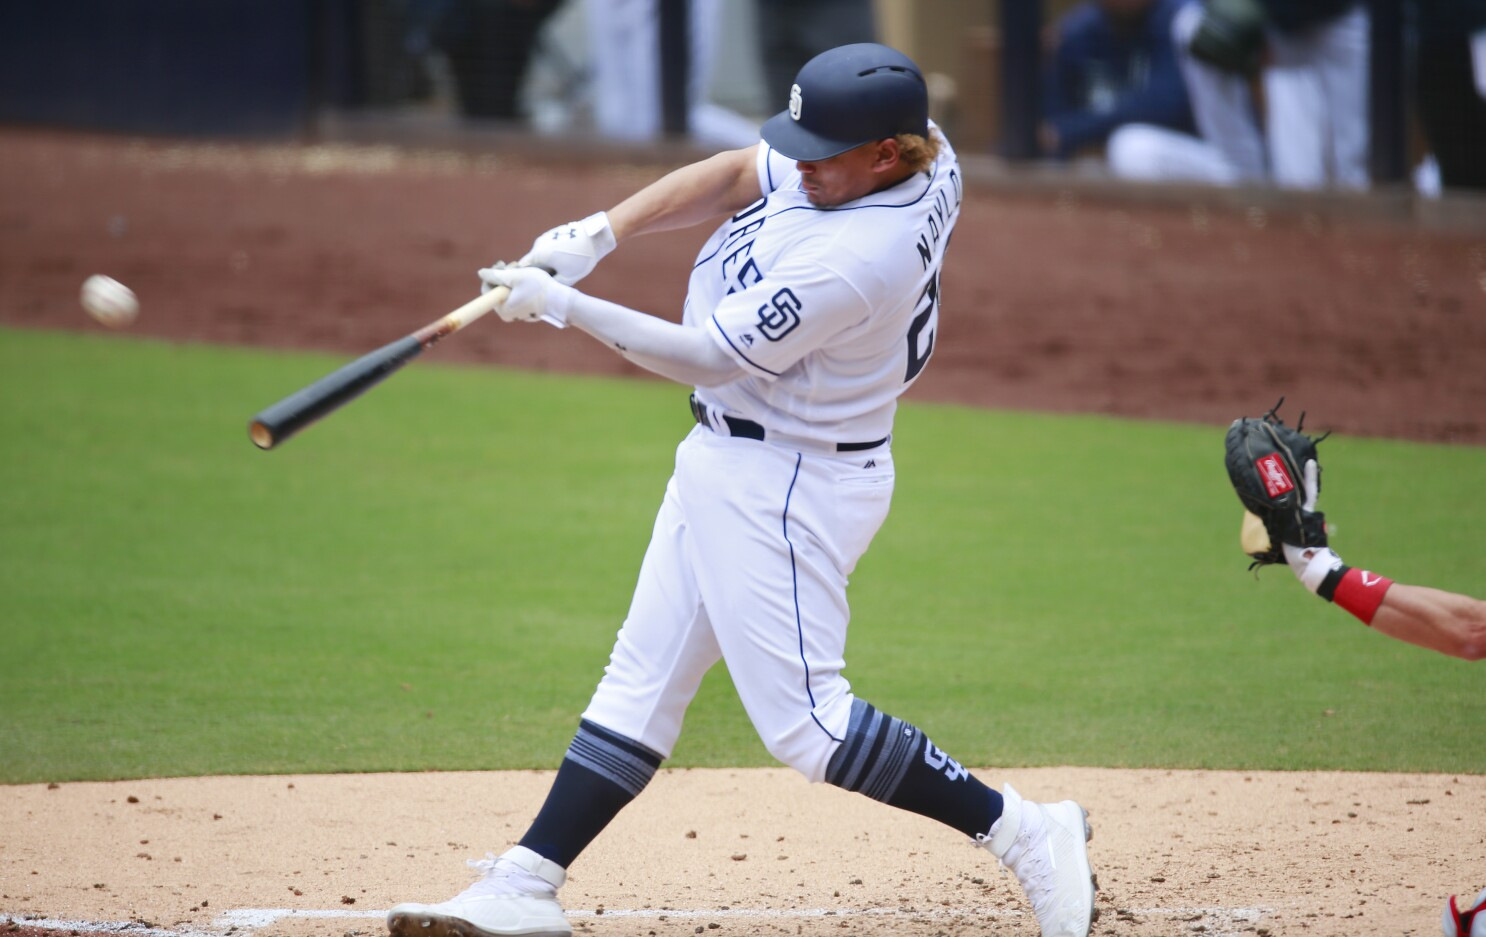 ce604fc5ea685d Padres notes: Naylor makes case to stay in majors; Machado's 'bittersweet'  move